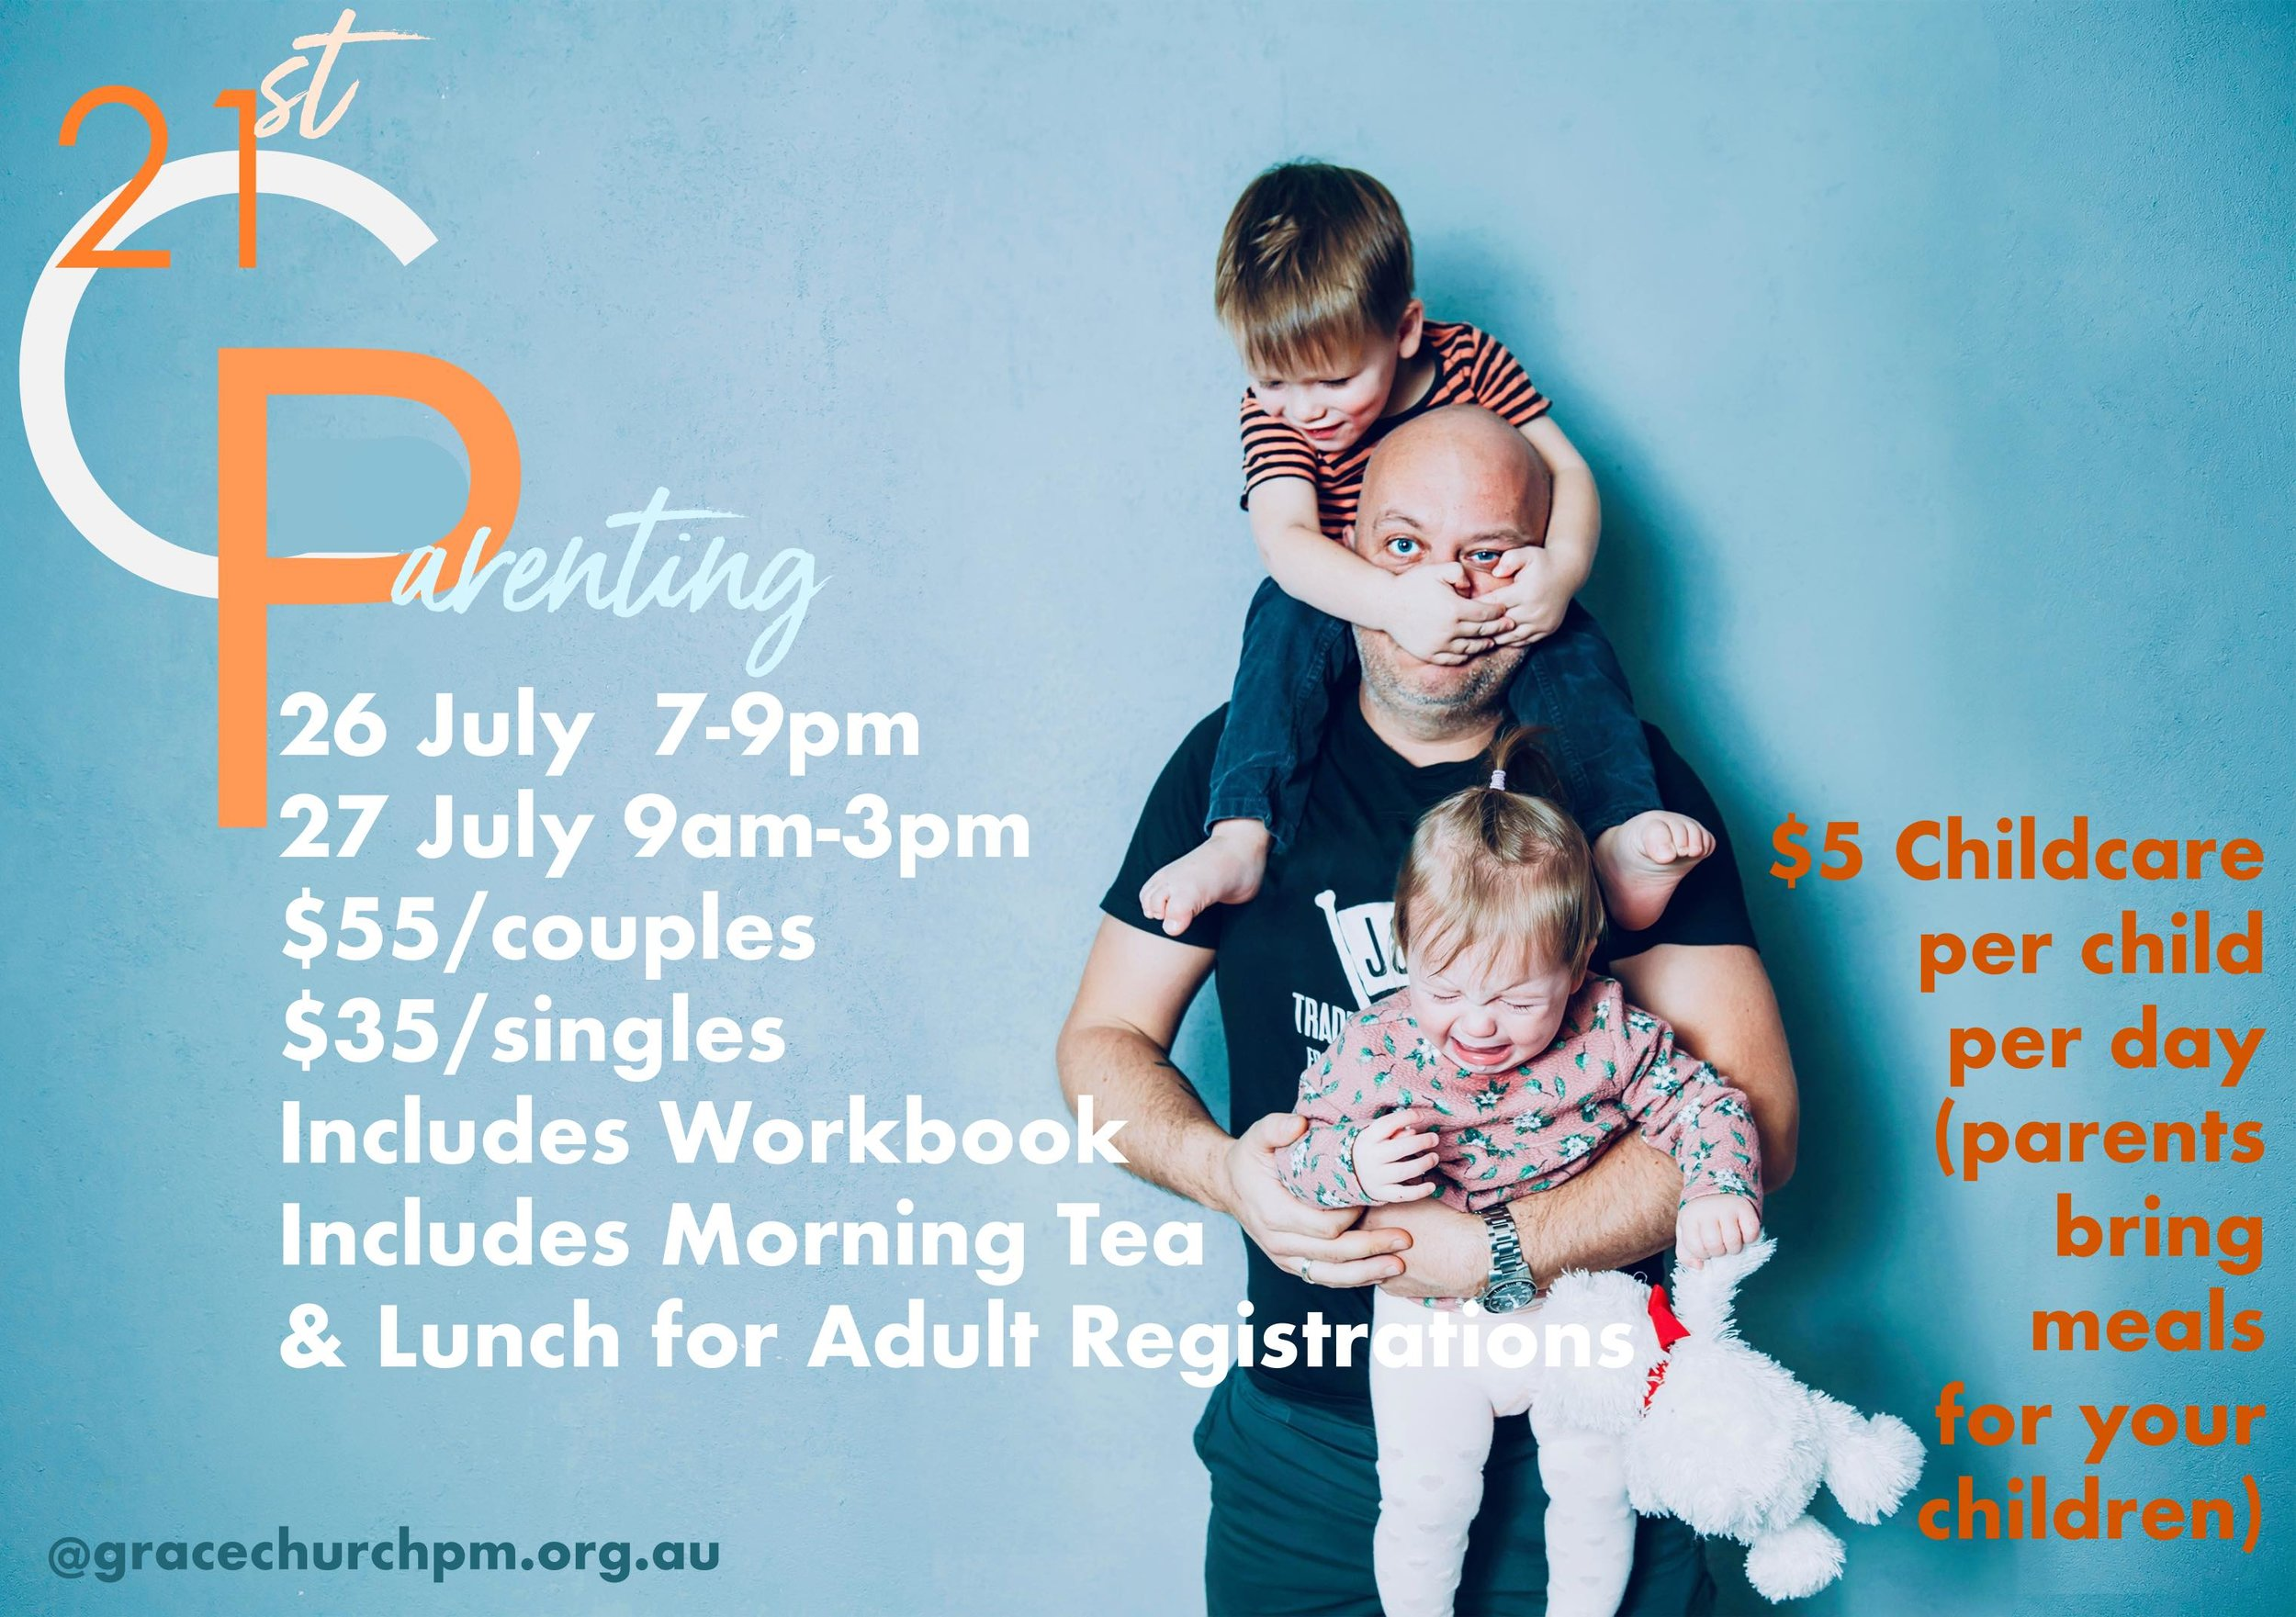 21st Century Parenting with Pastor Jeremy Griffiths